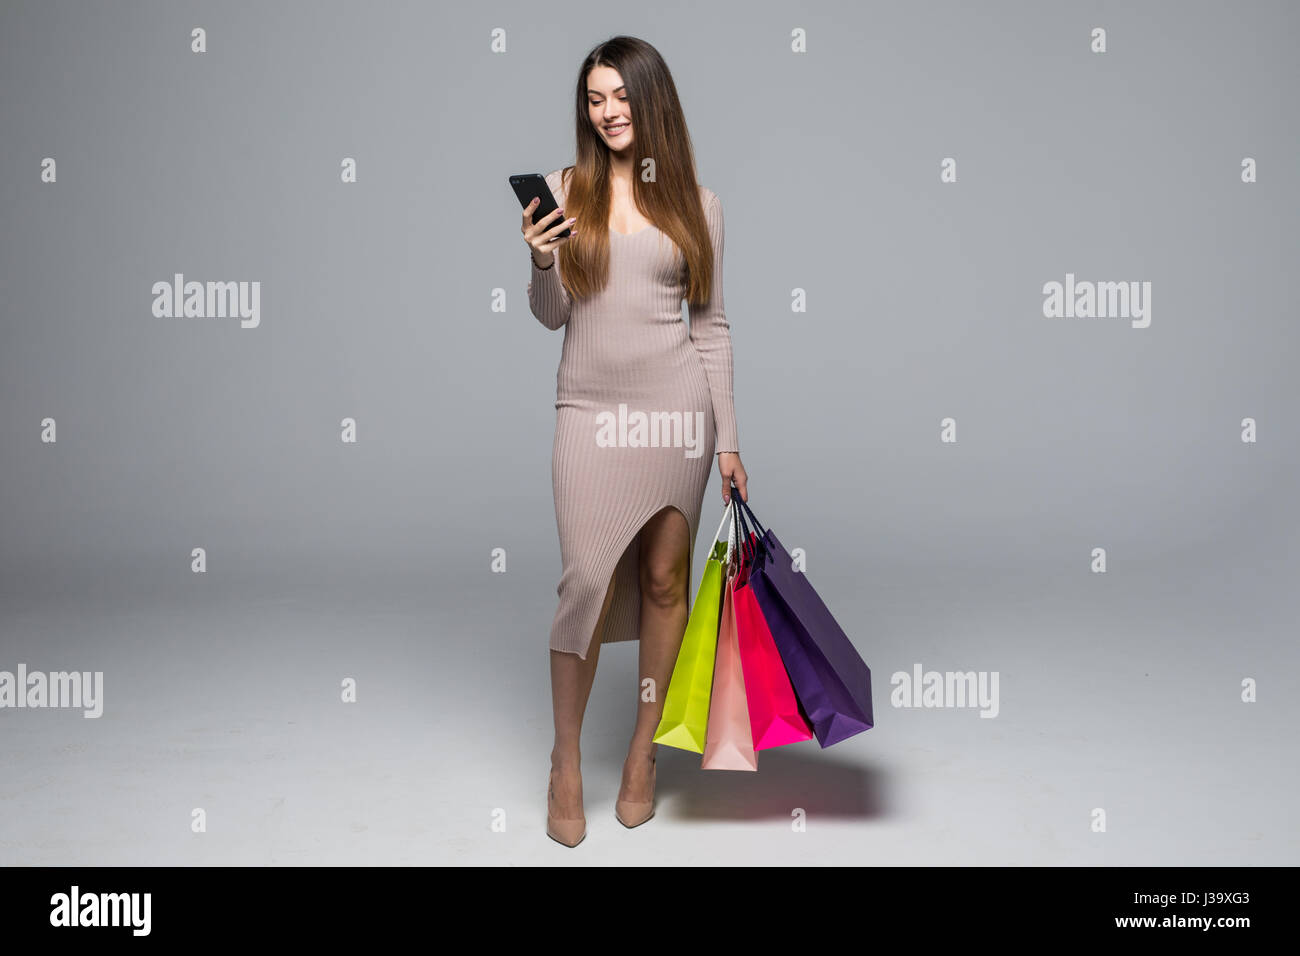 Young woman holding shopping bags and use mobile phone isolated on grey background - Stock Image